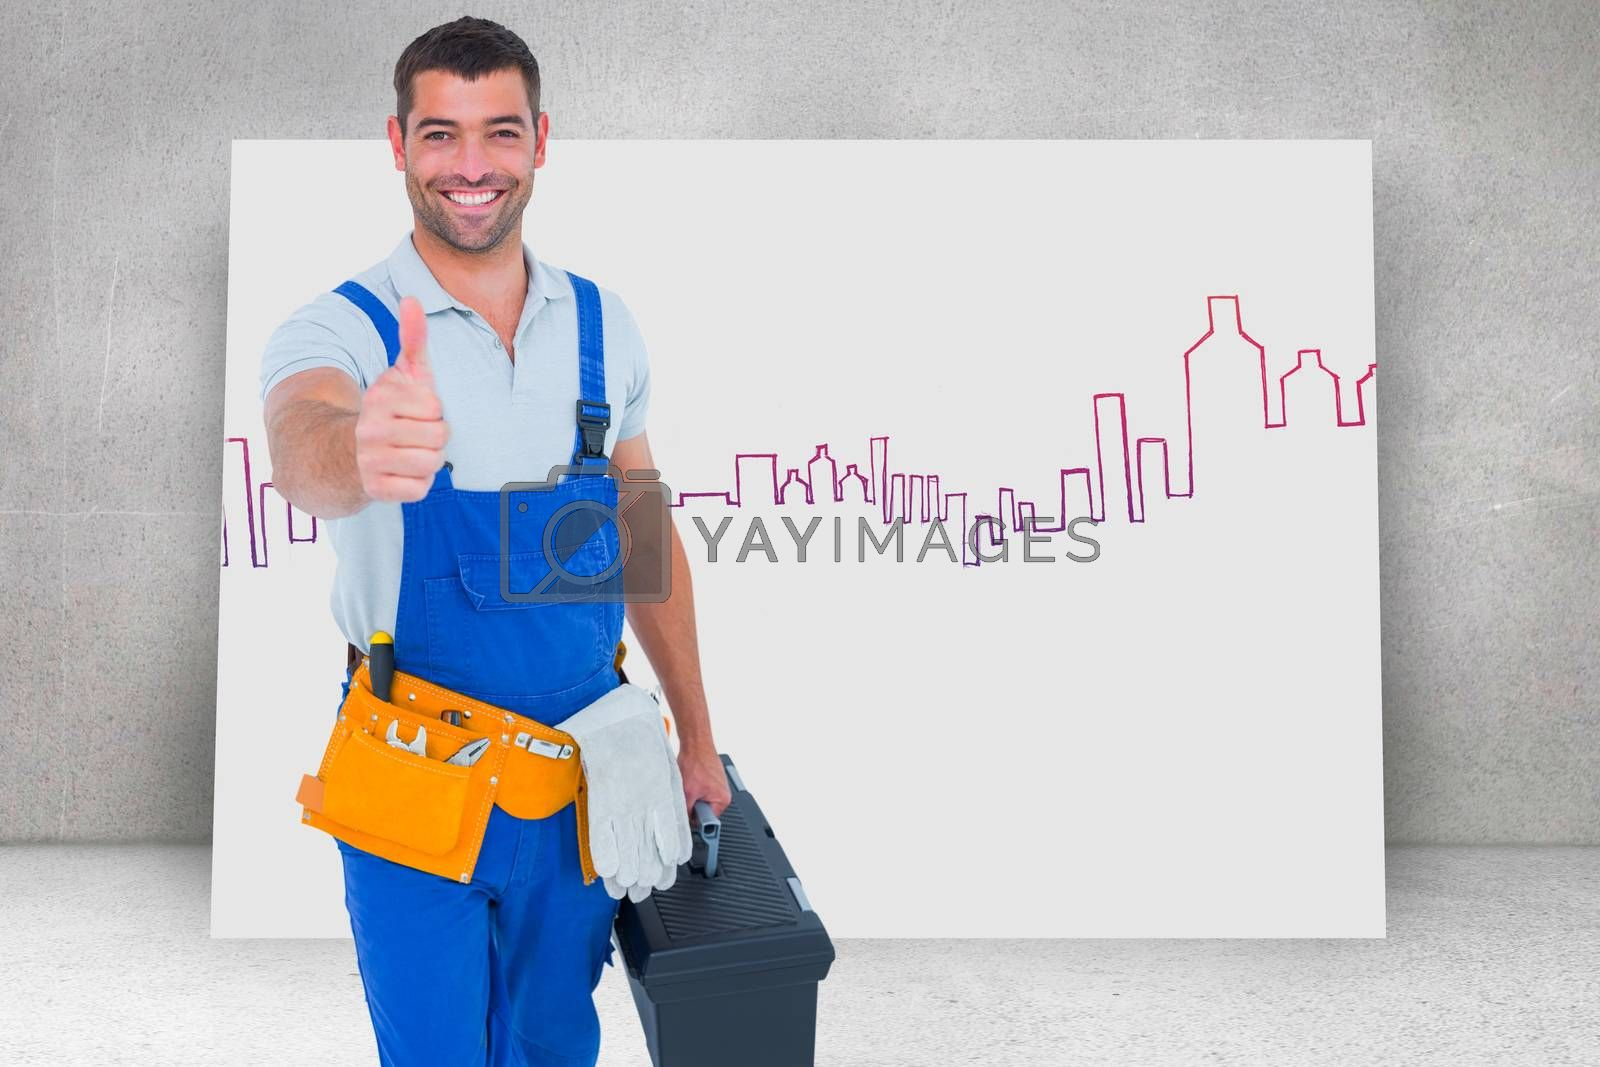 Happy repairman with toolbox gesturing thumbs up against composite image of white card